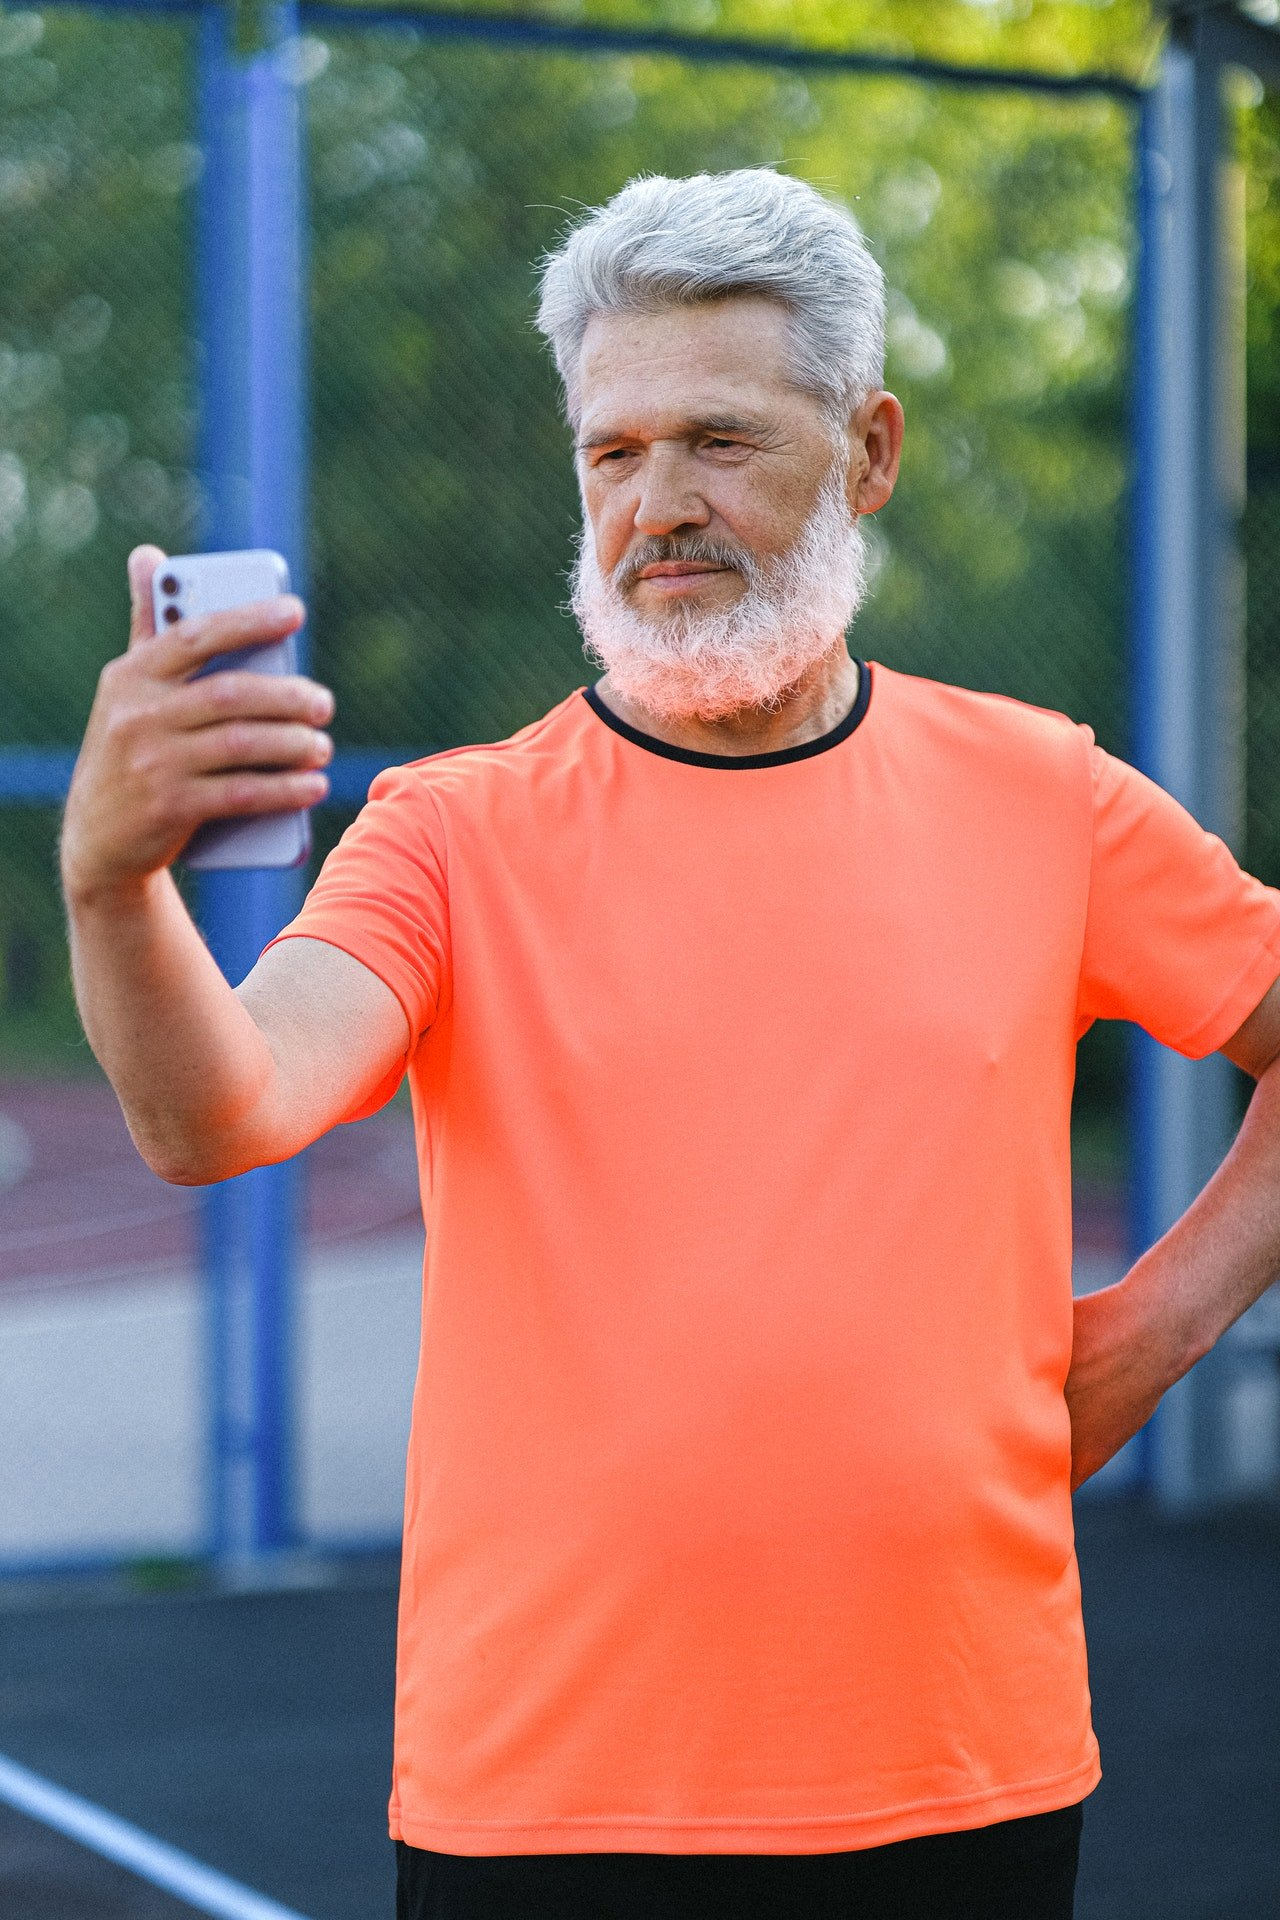 Photo of an old man taking a selfie | Photo: Pexels